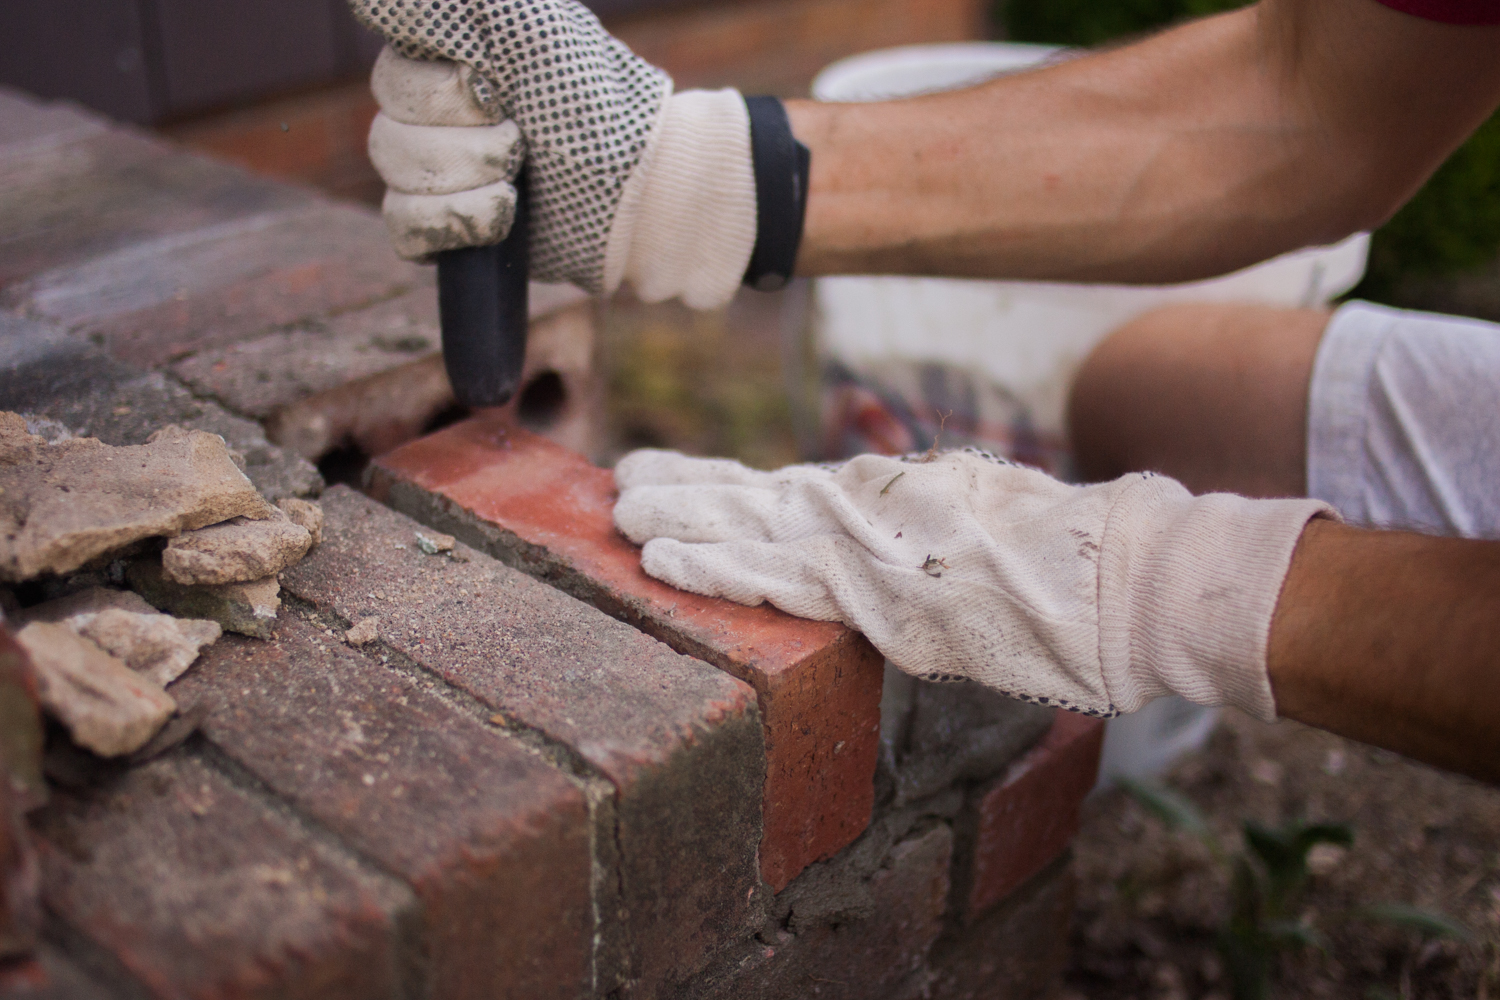 tapping down a newly installed brick